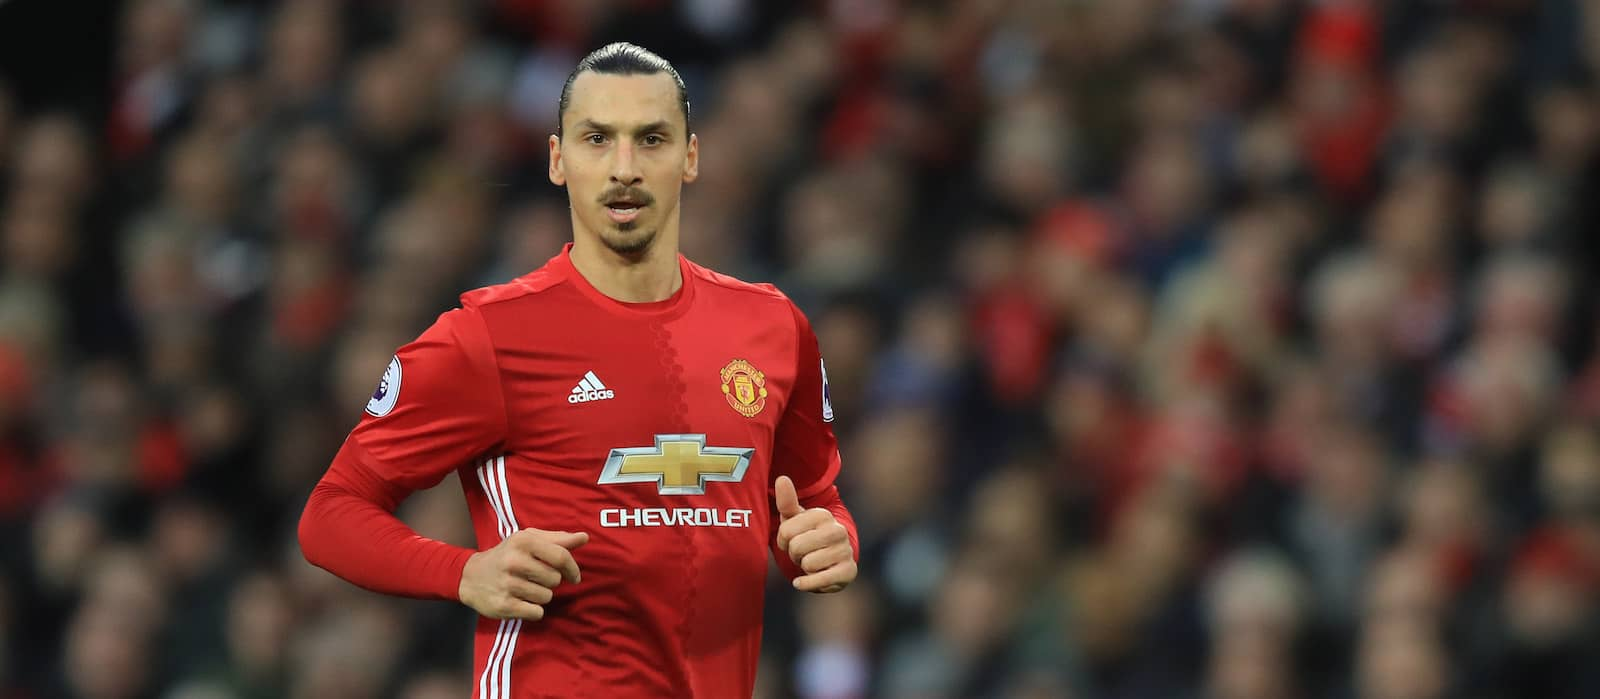 Zlatan Ibrahimovic: It's a decisive moment of the season for Man United